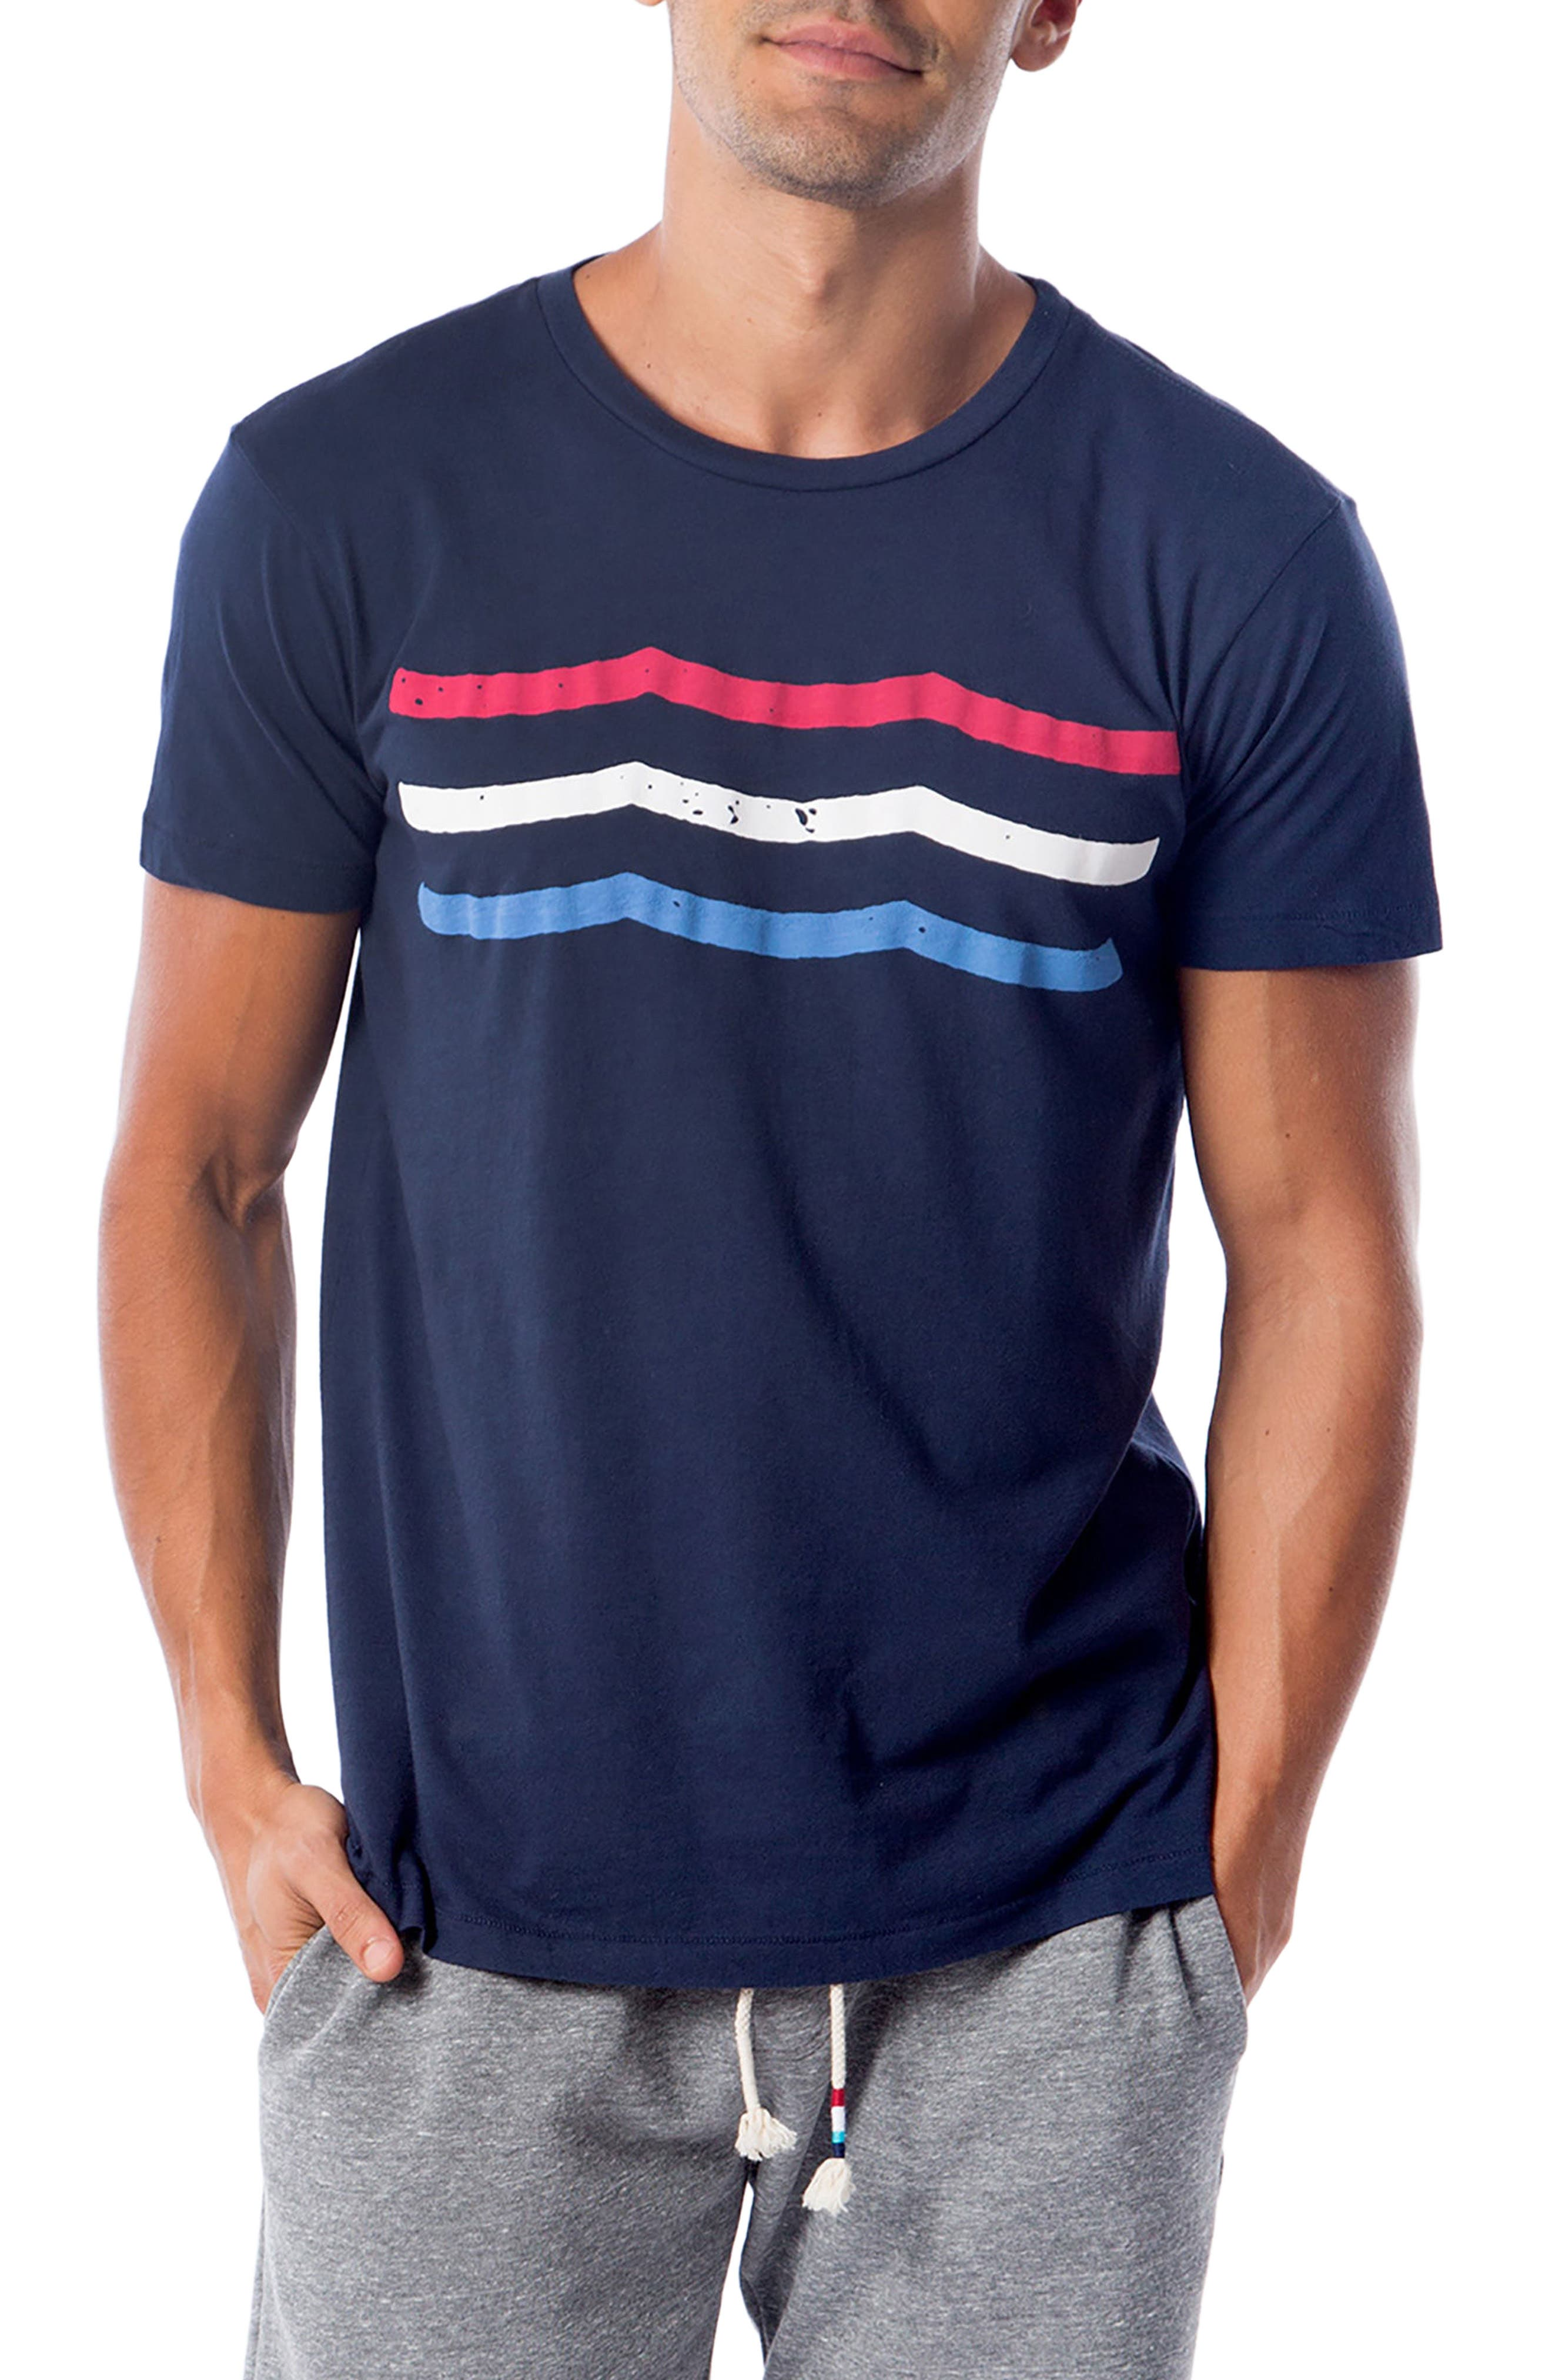 American Waves T-Shirt,                         Main,                         color, 401